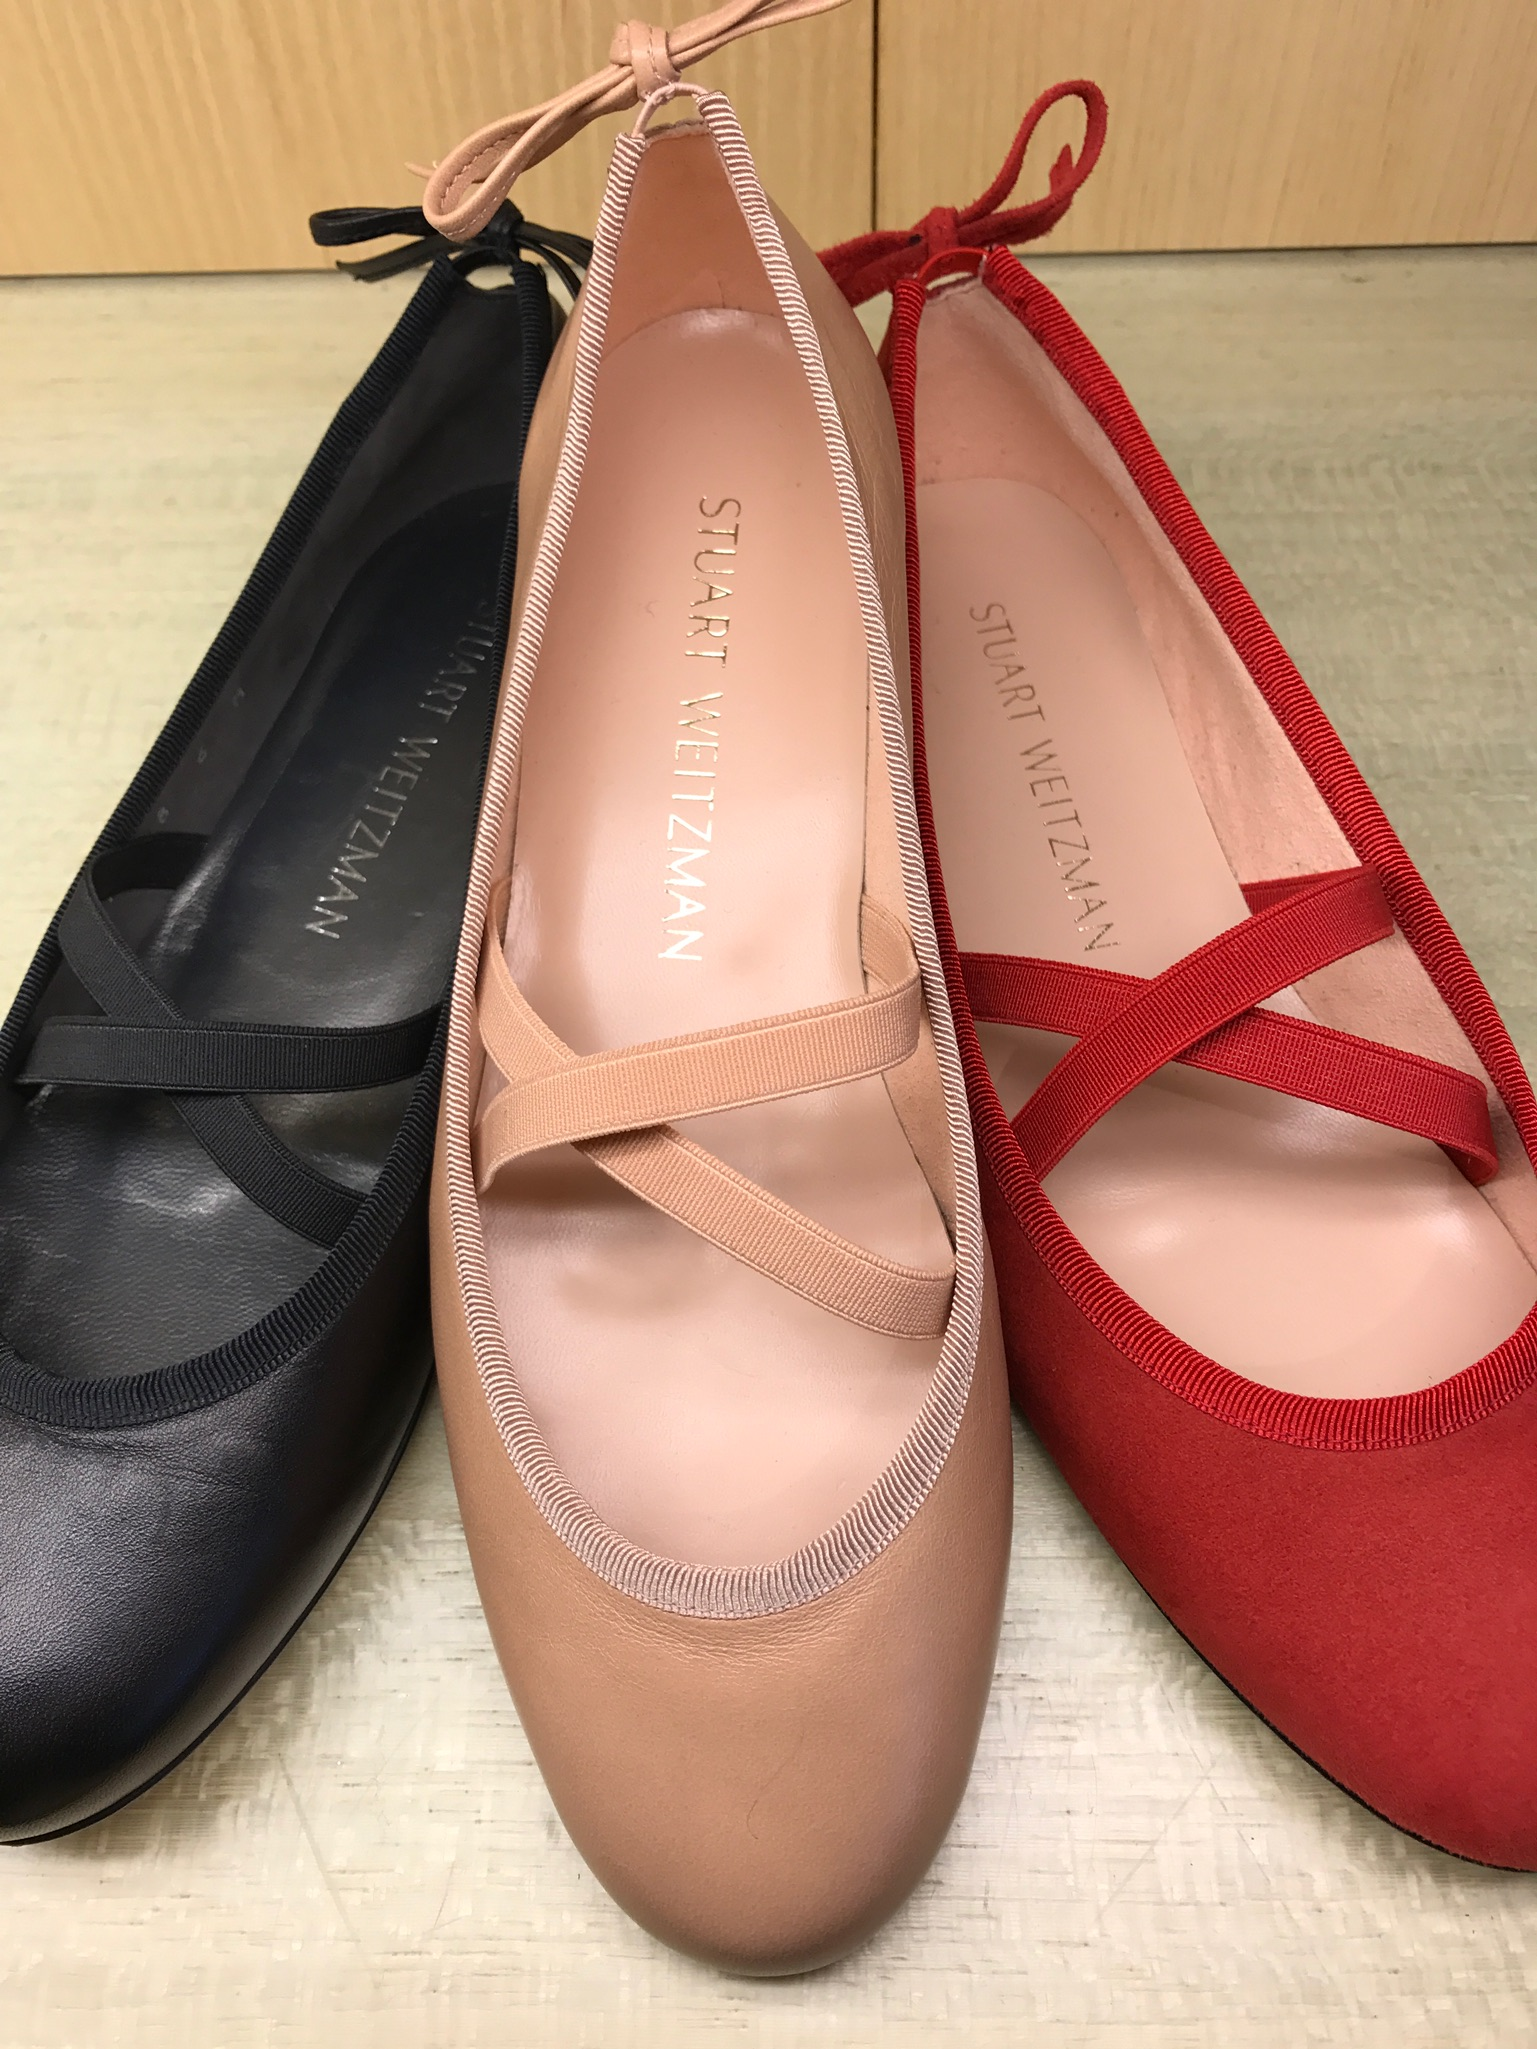 8-pairs-of-shoes-every-woman-needs-3.jpg